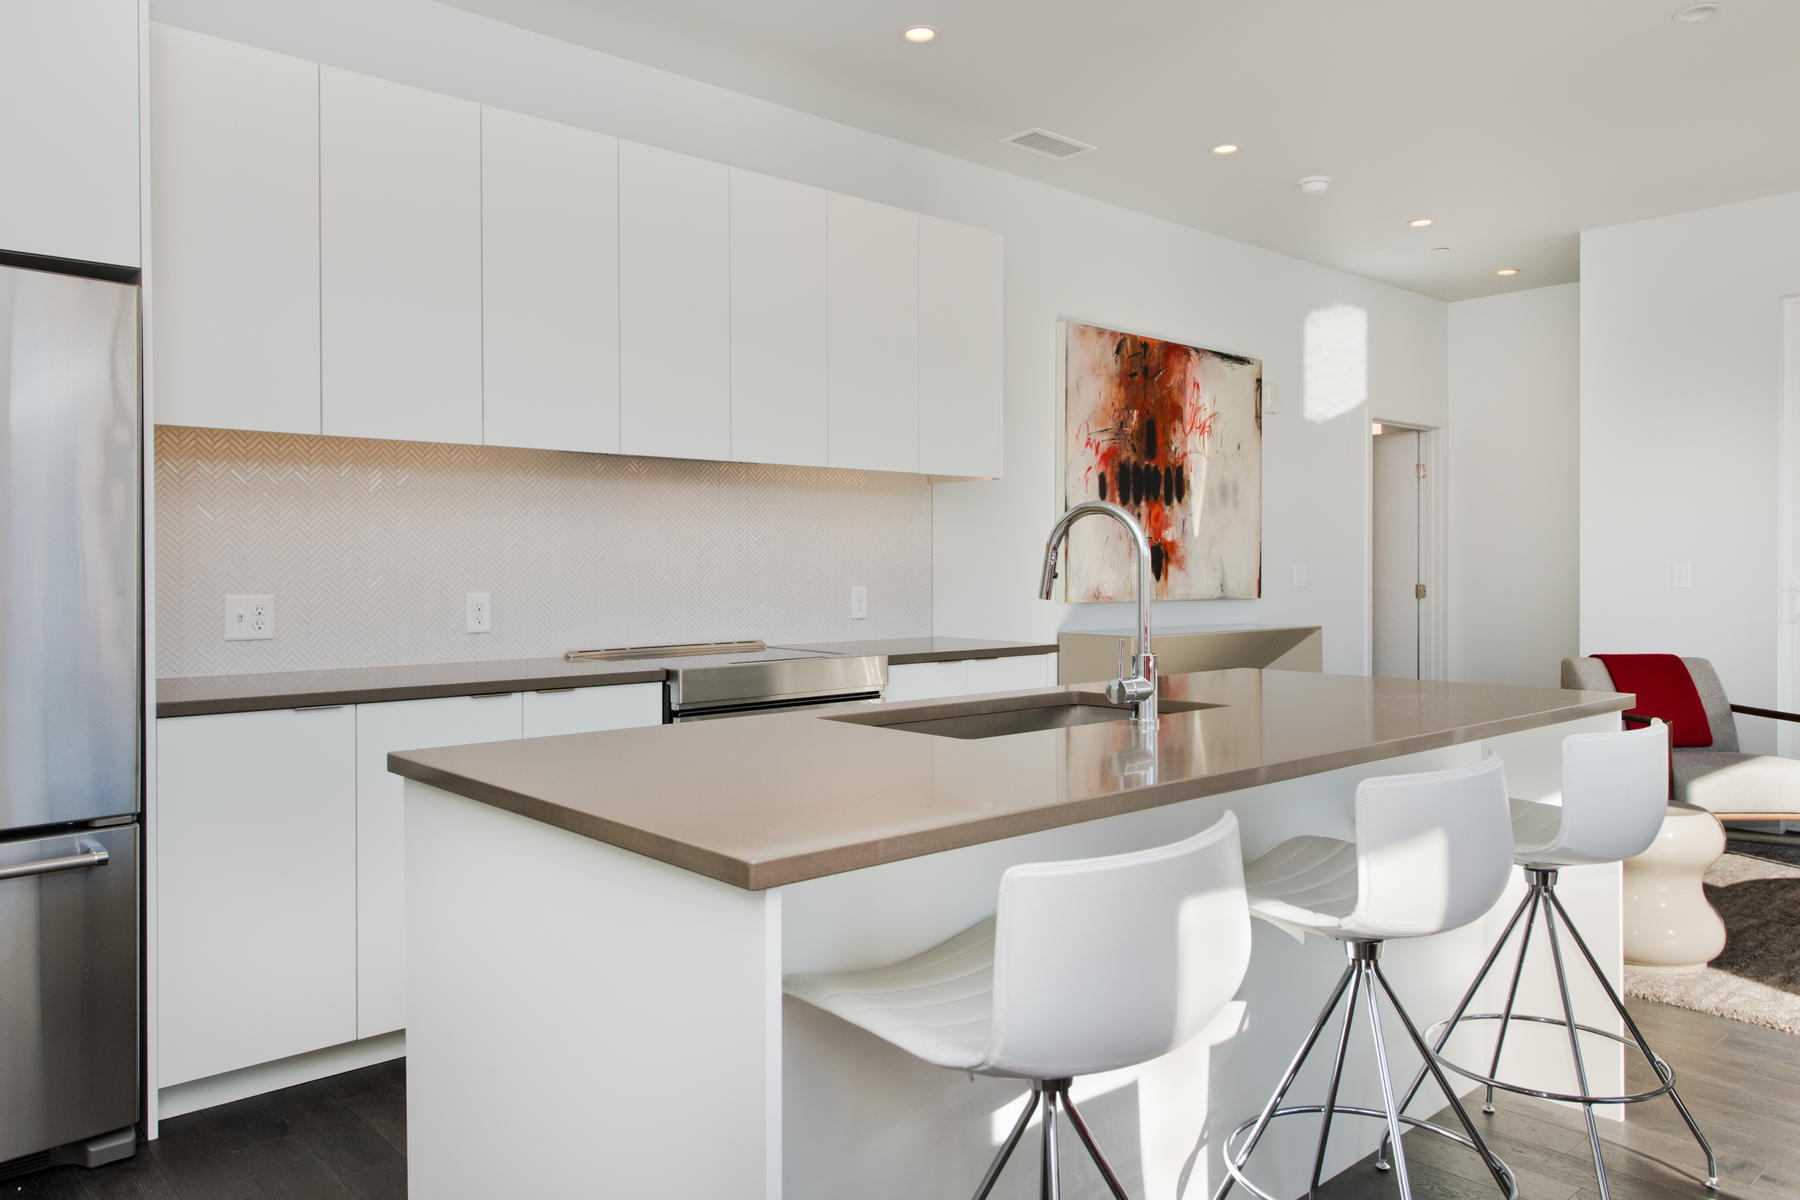 Single Family Home for Active at Recently completed new construction, move in ready and nearing sell-out. 1300 N Ogden St #202 Denver, Colorado 80218 United States